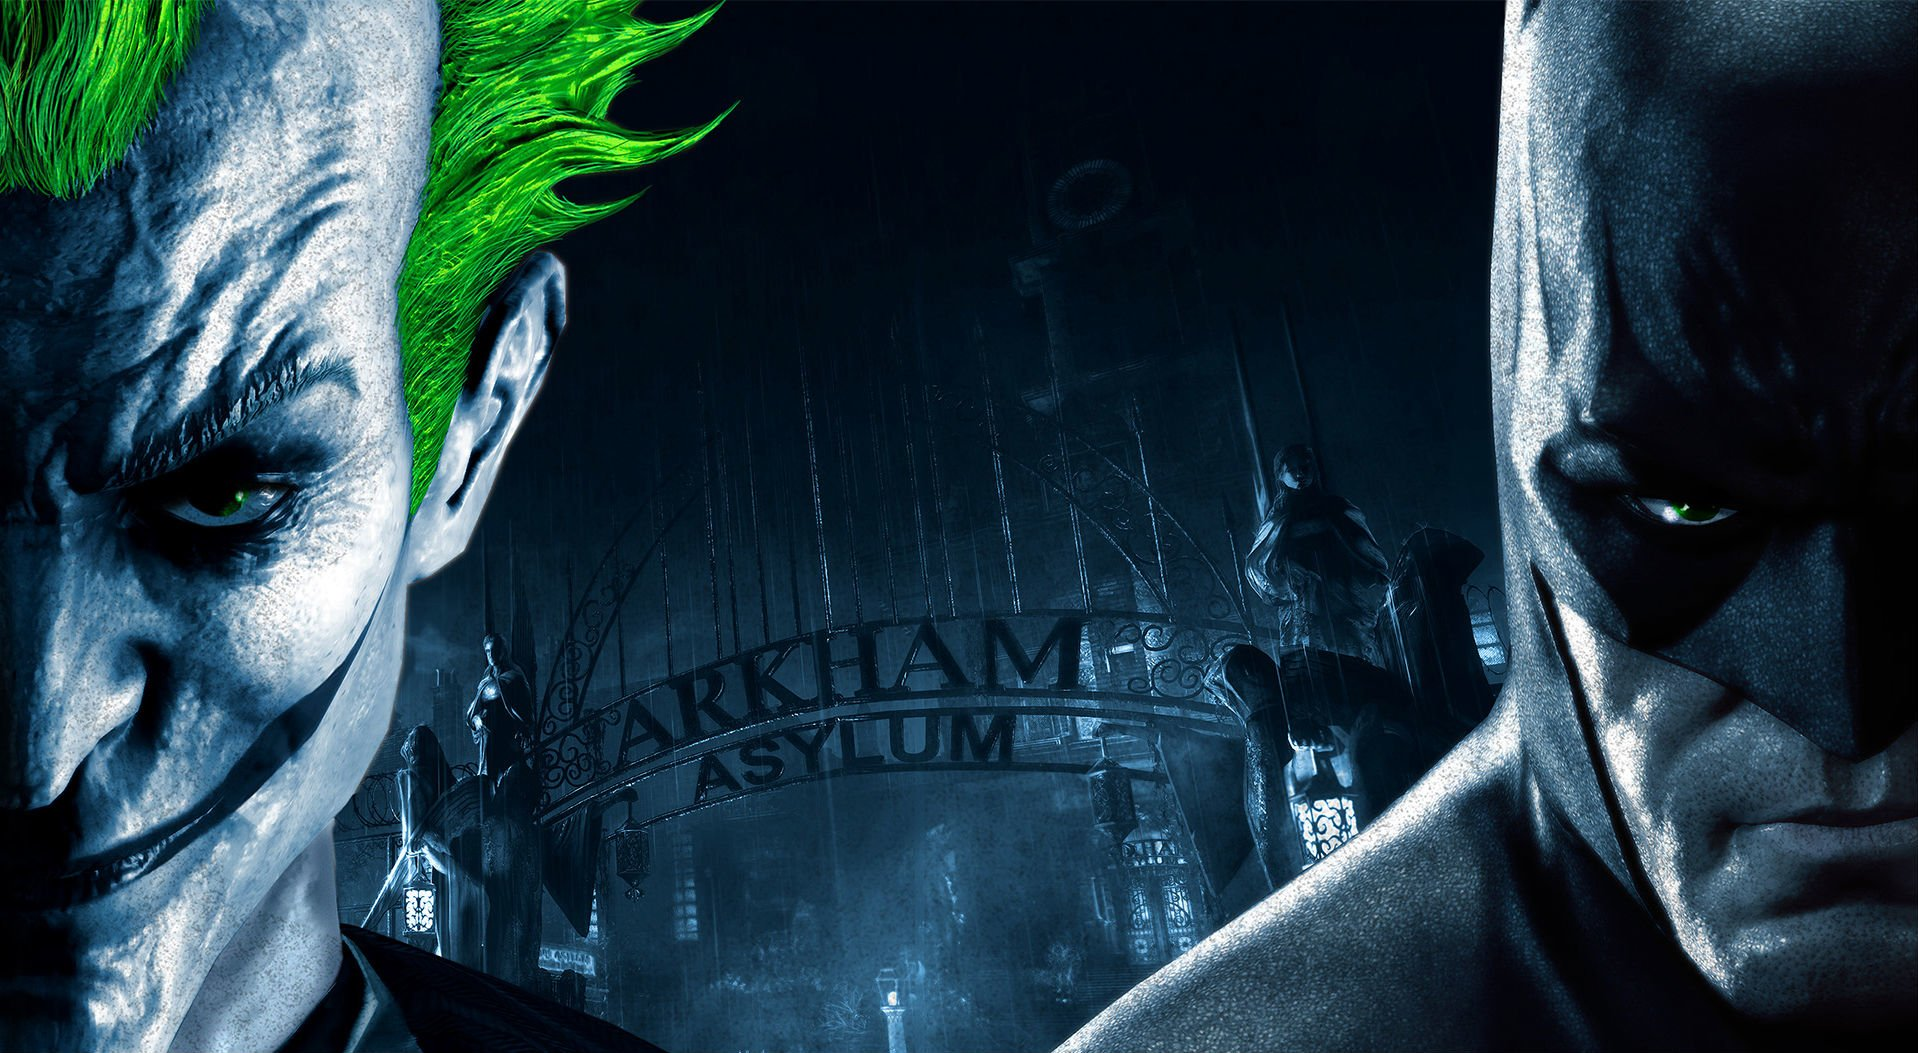 Becoming The Dark Knight: 'Batman: Arkham Asylum' Turns 10 - Bloody Disgusting